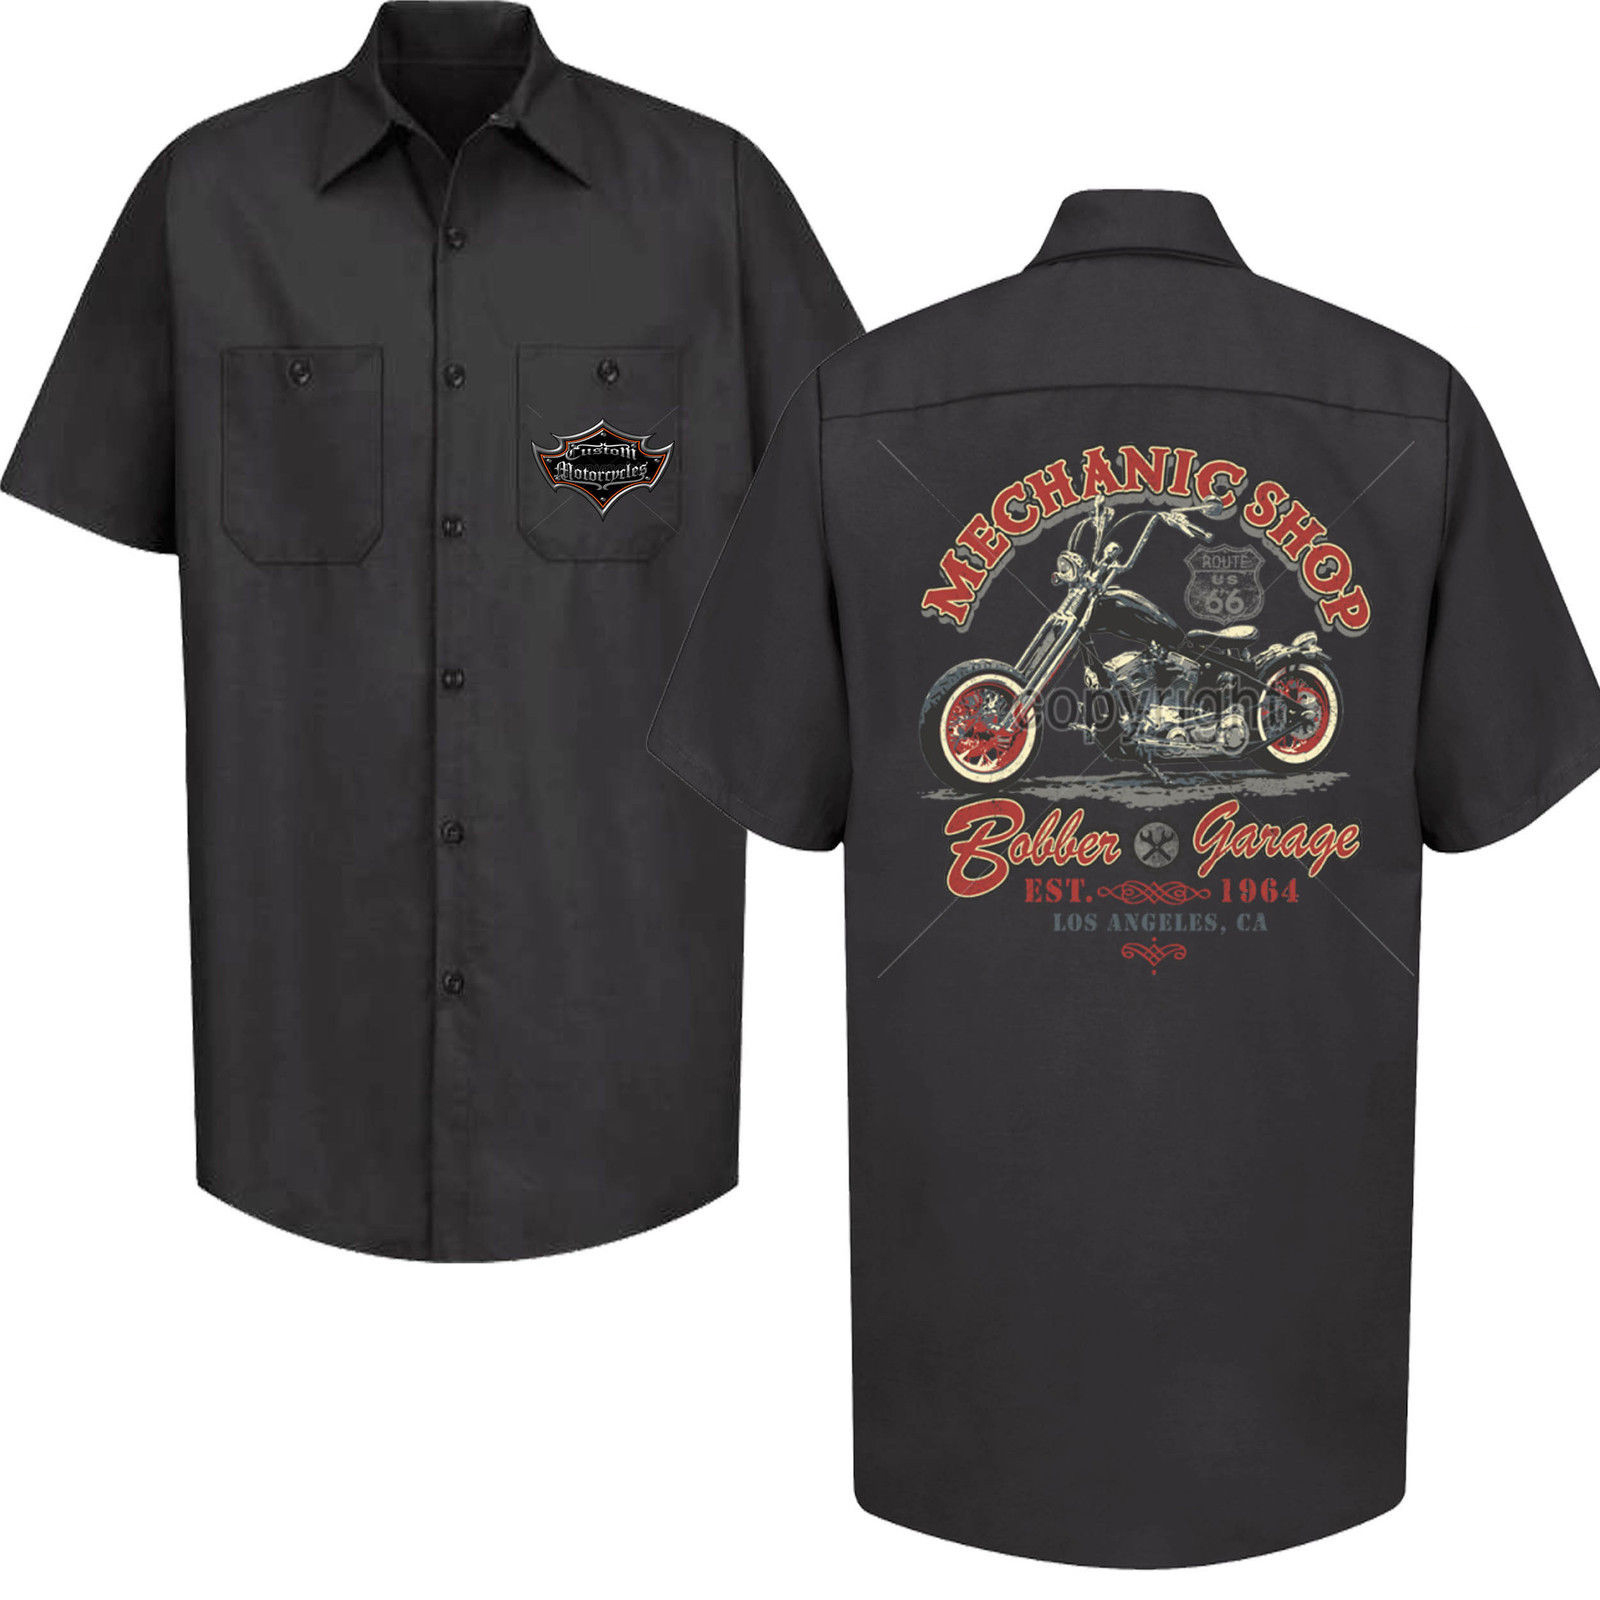 Mechanic shop red kap garage work shirt biker motorbike for Red kap mechanic shirts